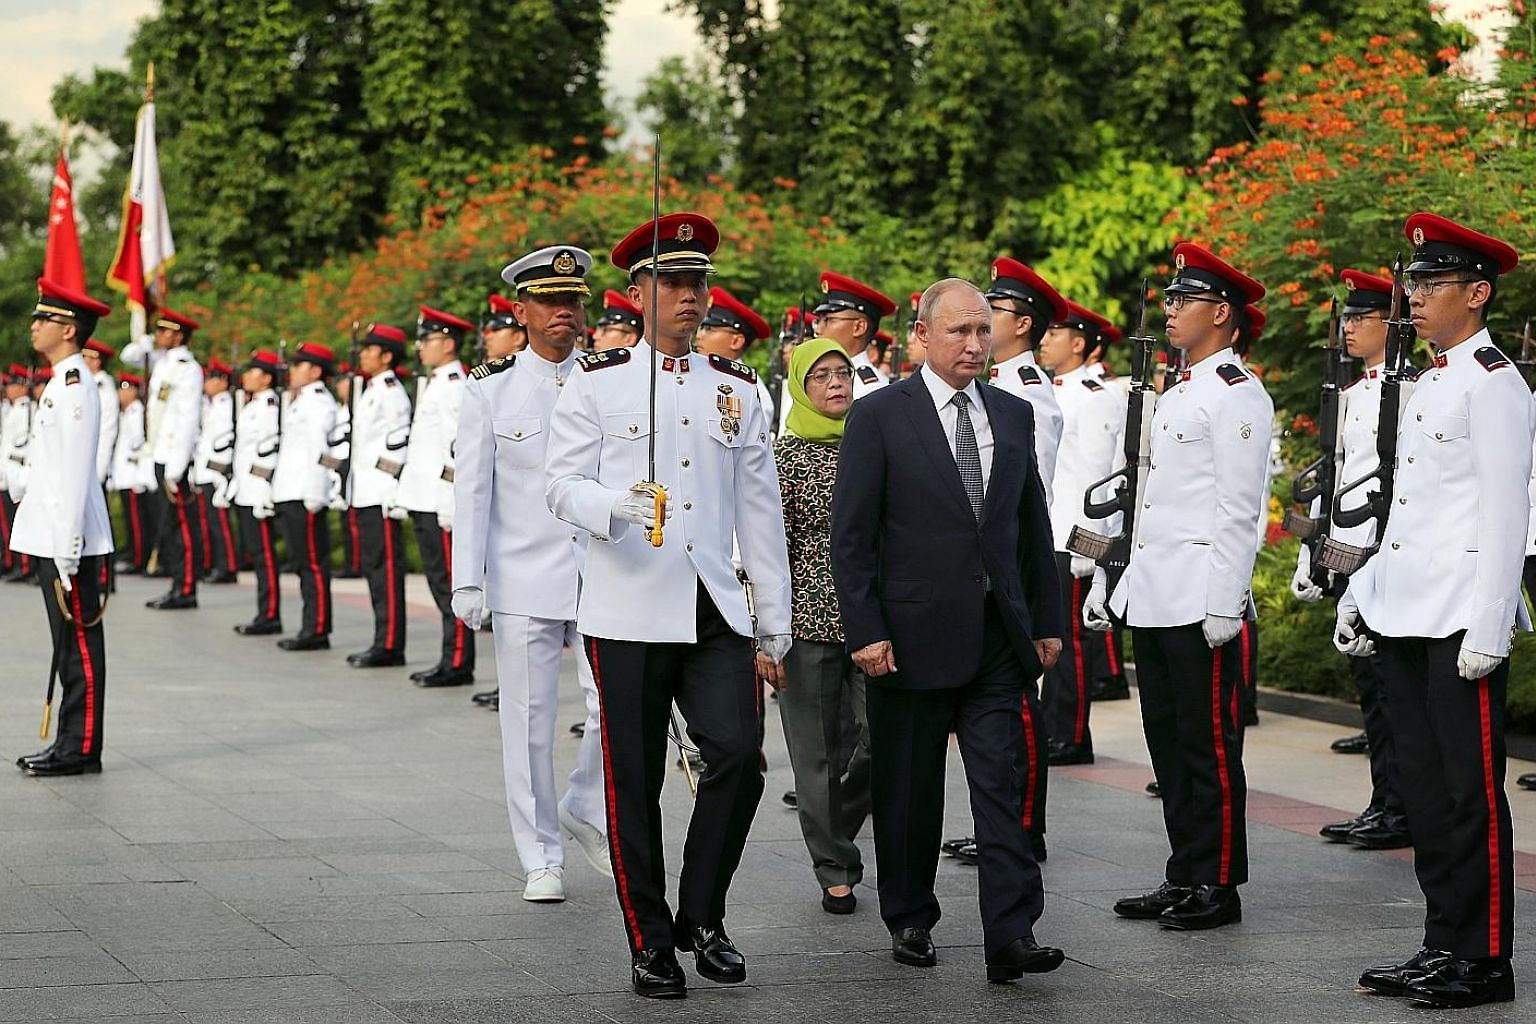 Russian President Vladimir Putin reviewing the guard of honour with Singapore President Halimah Yacob at the Istana yesterday. Singapore President Halimah Yacob and Russian President Vladimir Putin unveiling the cornerstone yesterday at the groundbre